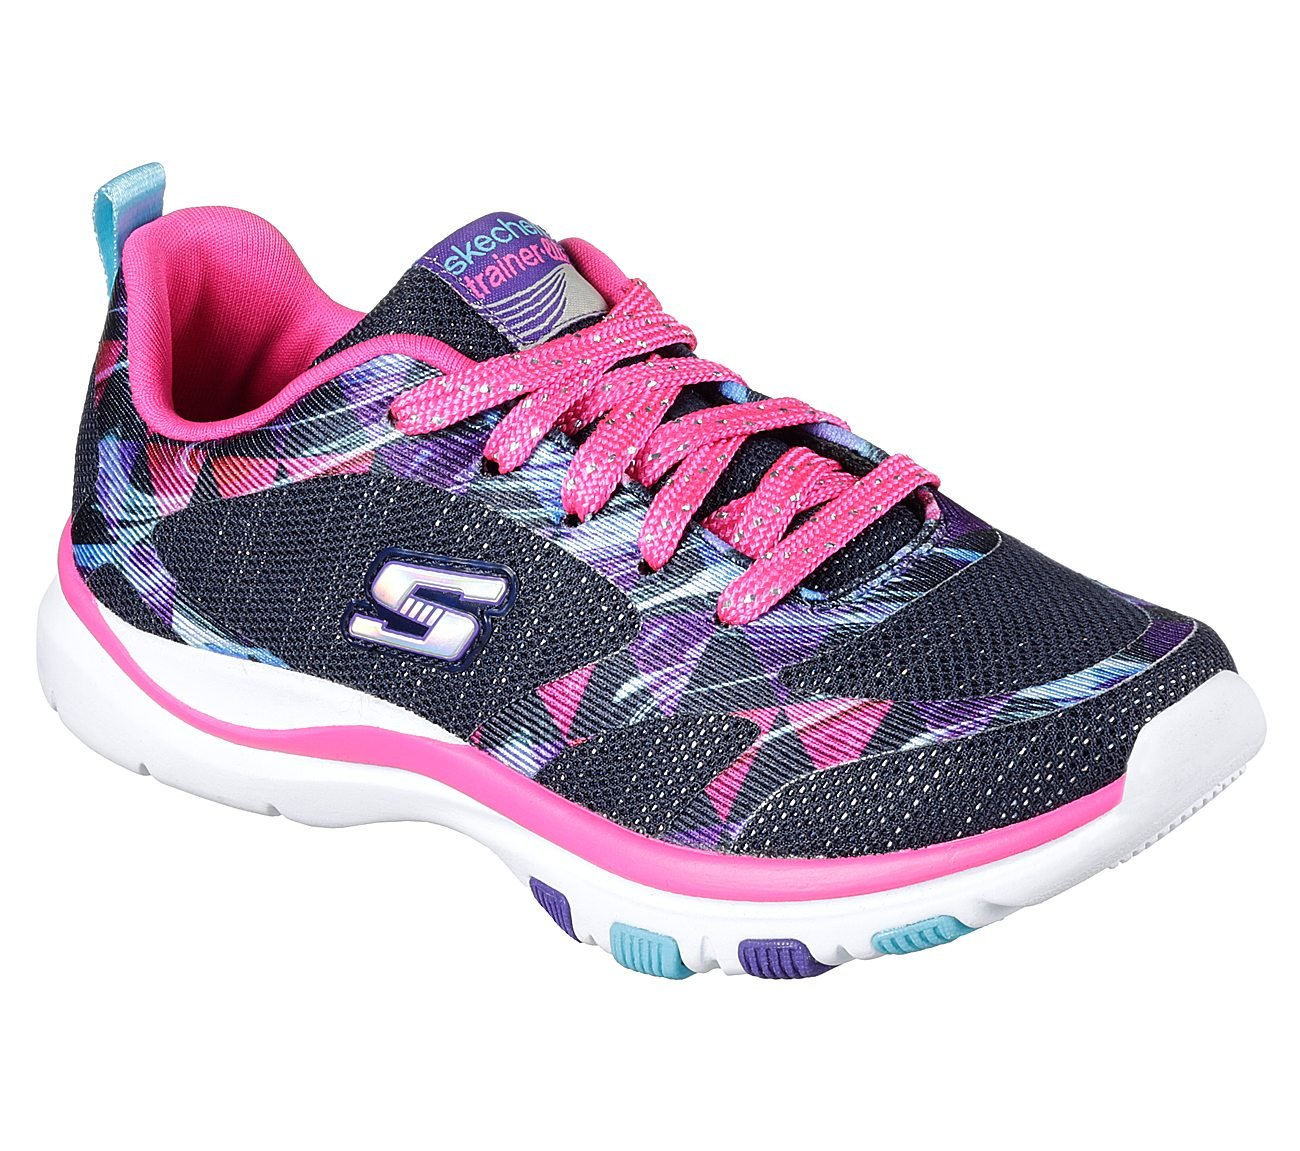 Skechers Girl's Trainer Lite, Training, Navy/Hot Pink, 1.5 Little Kid M